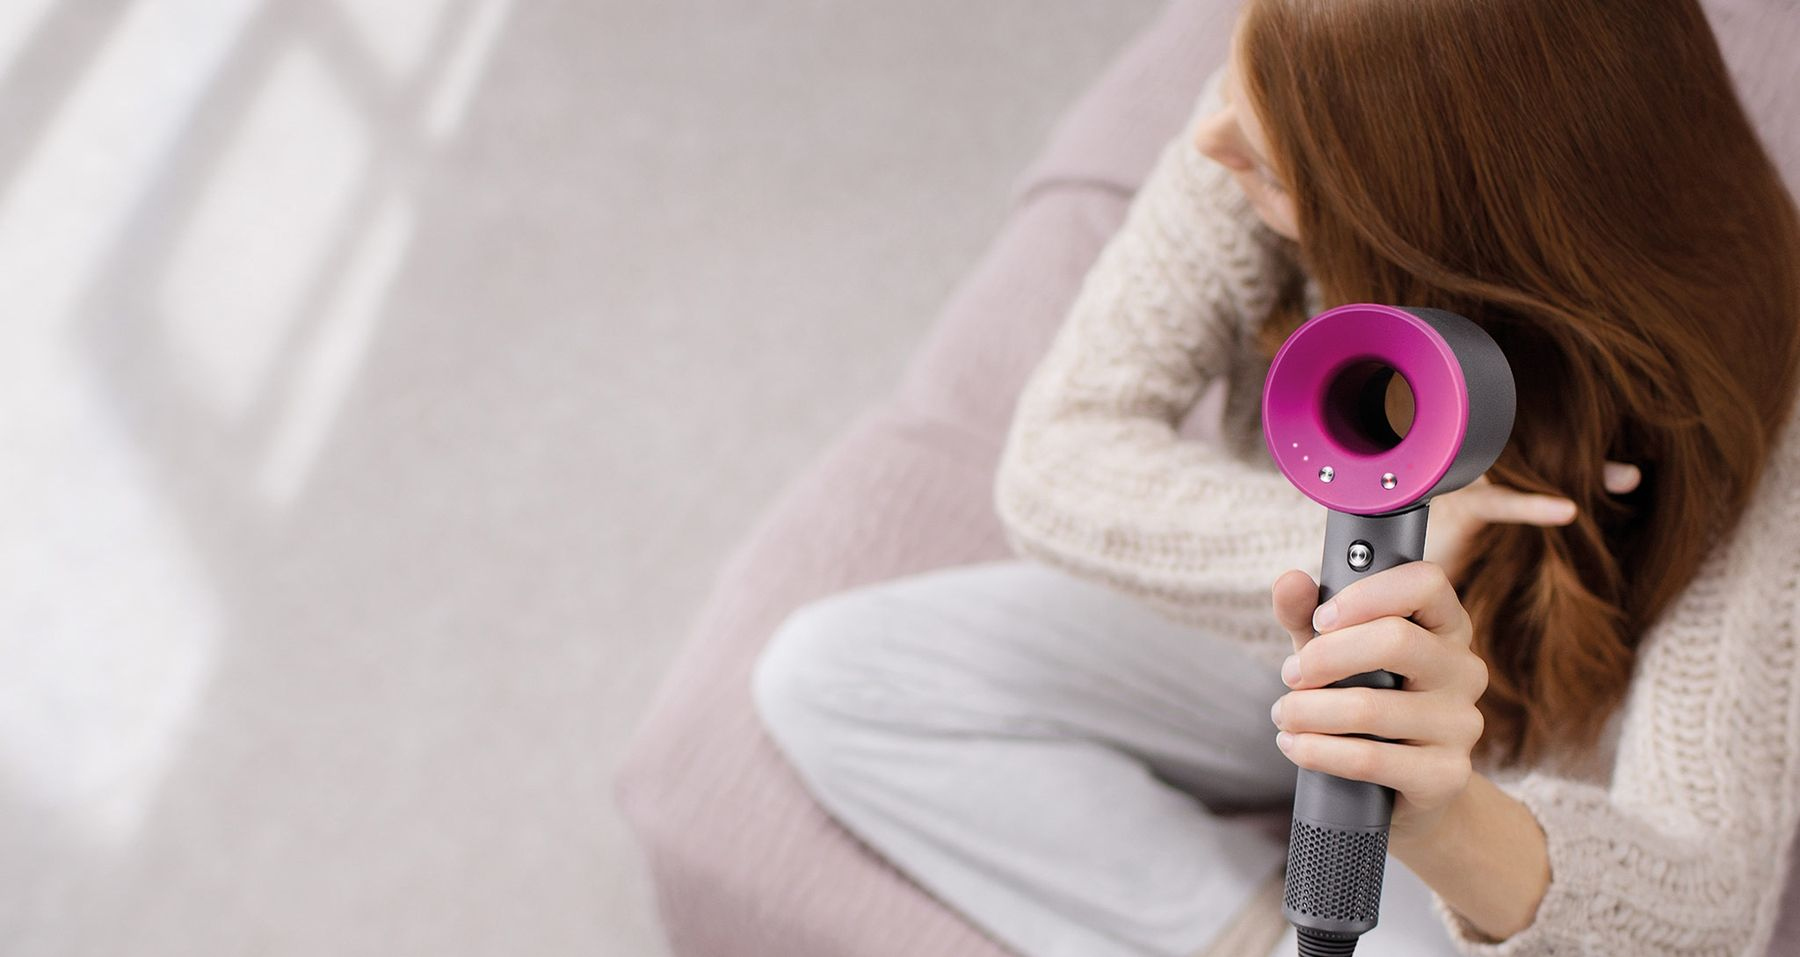 Dyson supersonic Dyson hair dryer, Hair dryer price, Dyson